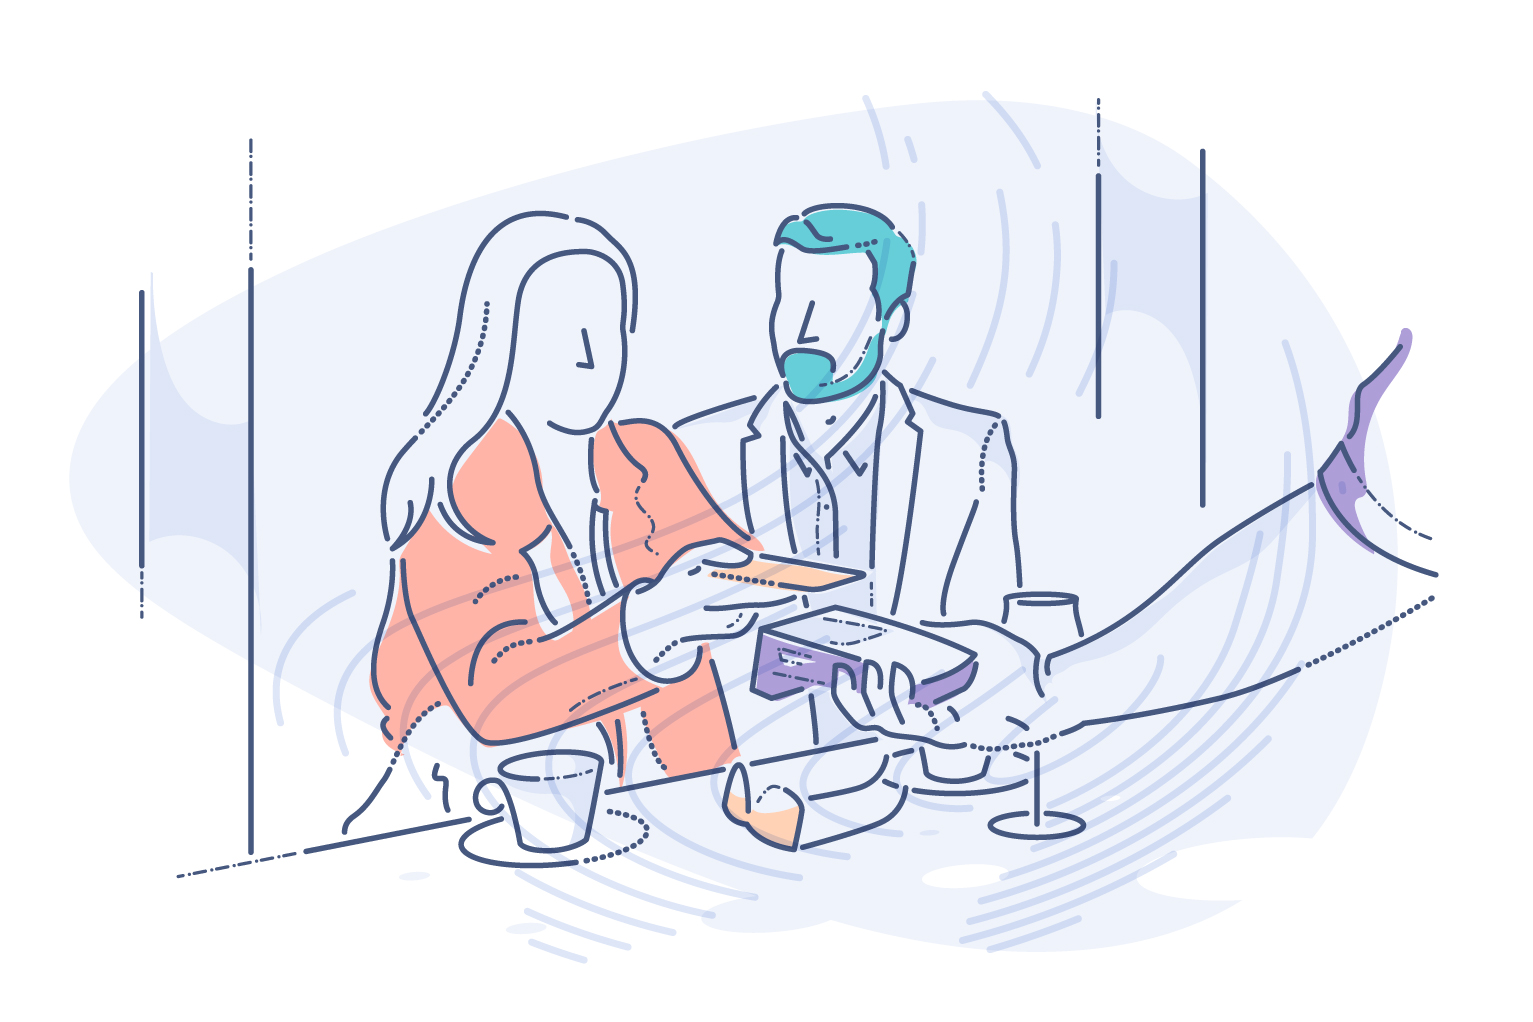 Finding the best terminal for accepting credit card payment - illustration showing consumer at restaurant handing credit card to vendor holding credit card processor.